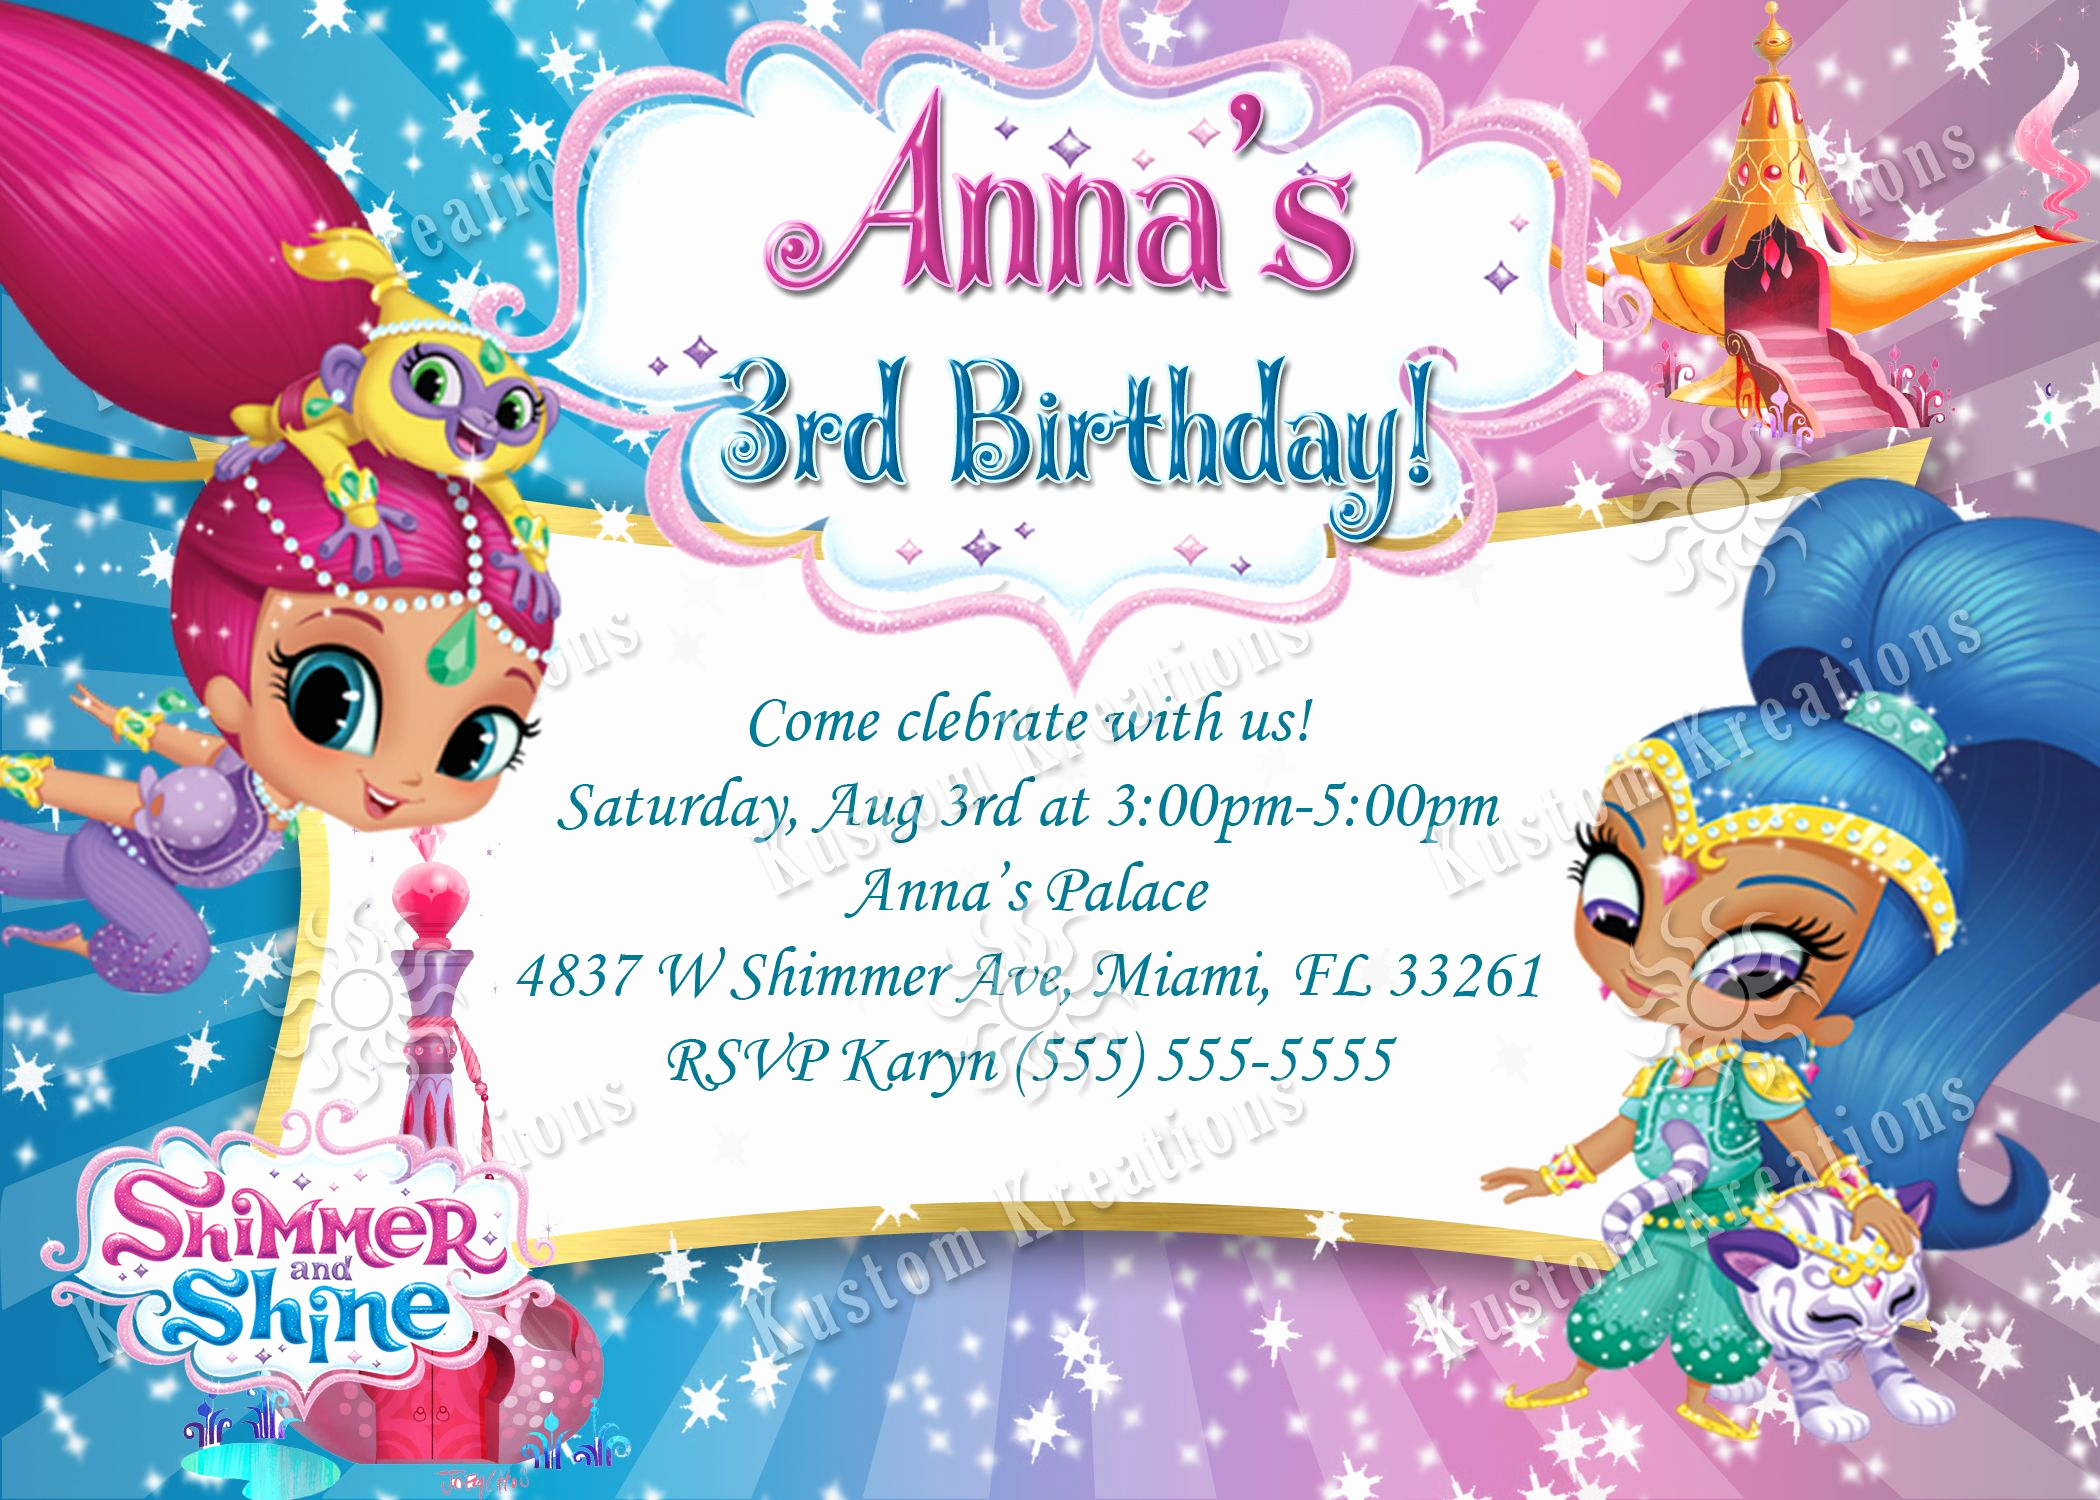 Shimmer and Shine Invitation Template Beautiful Shimmer and Shine Birthday Invitation